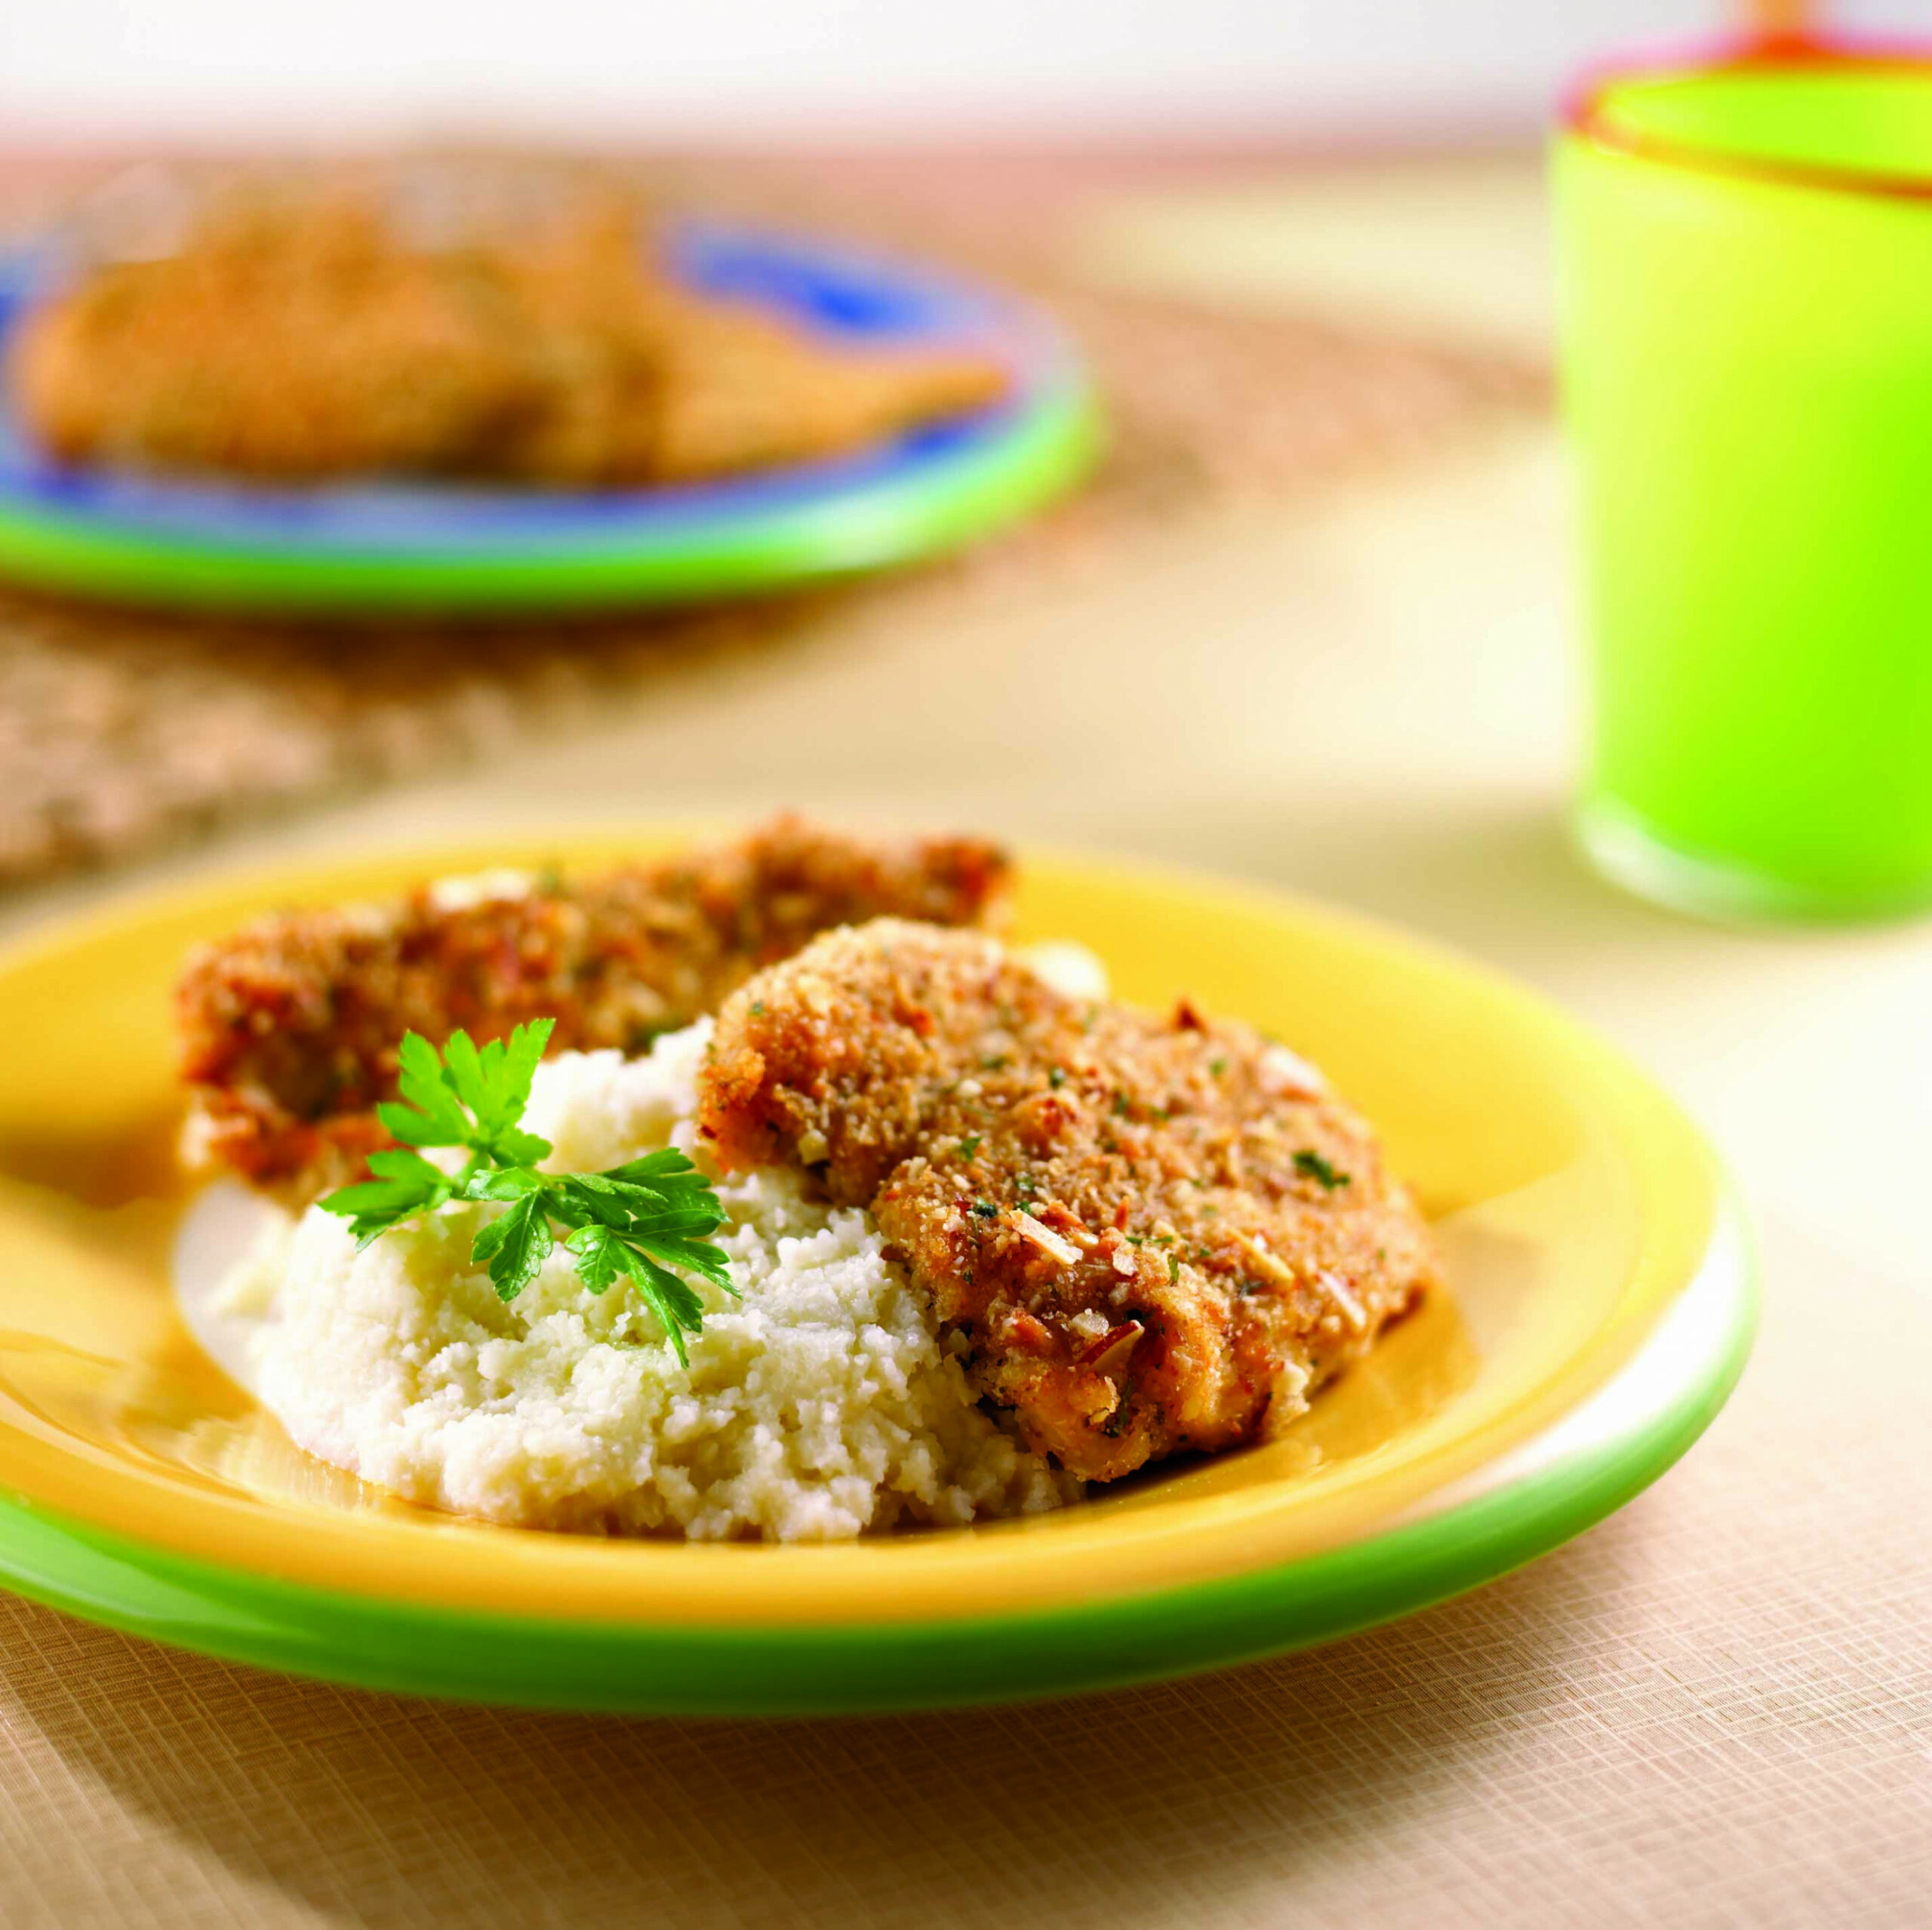 Fried Chicken with Almonds - South Beach Diet Healthy Recipes - healthy recipes oven